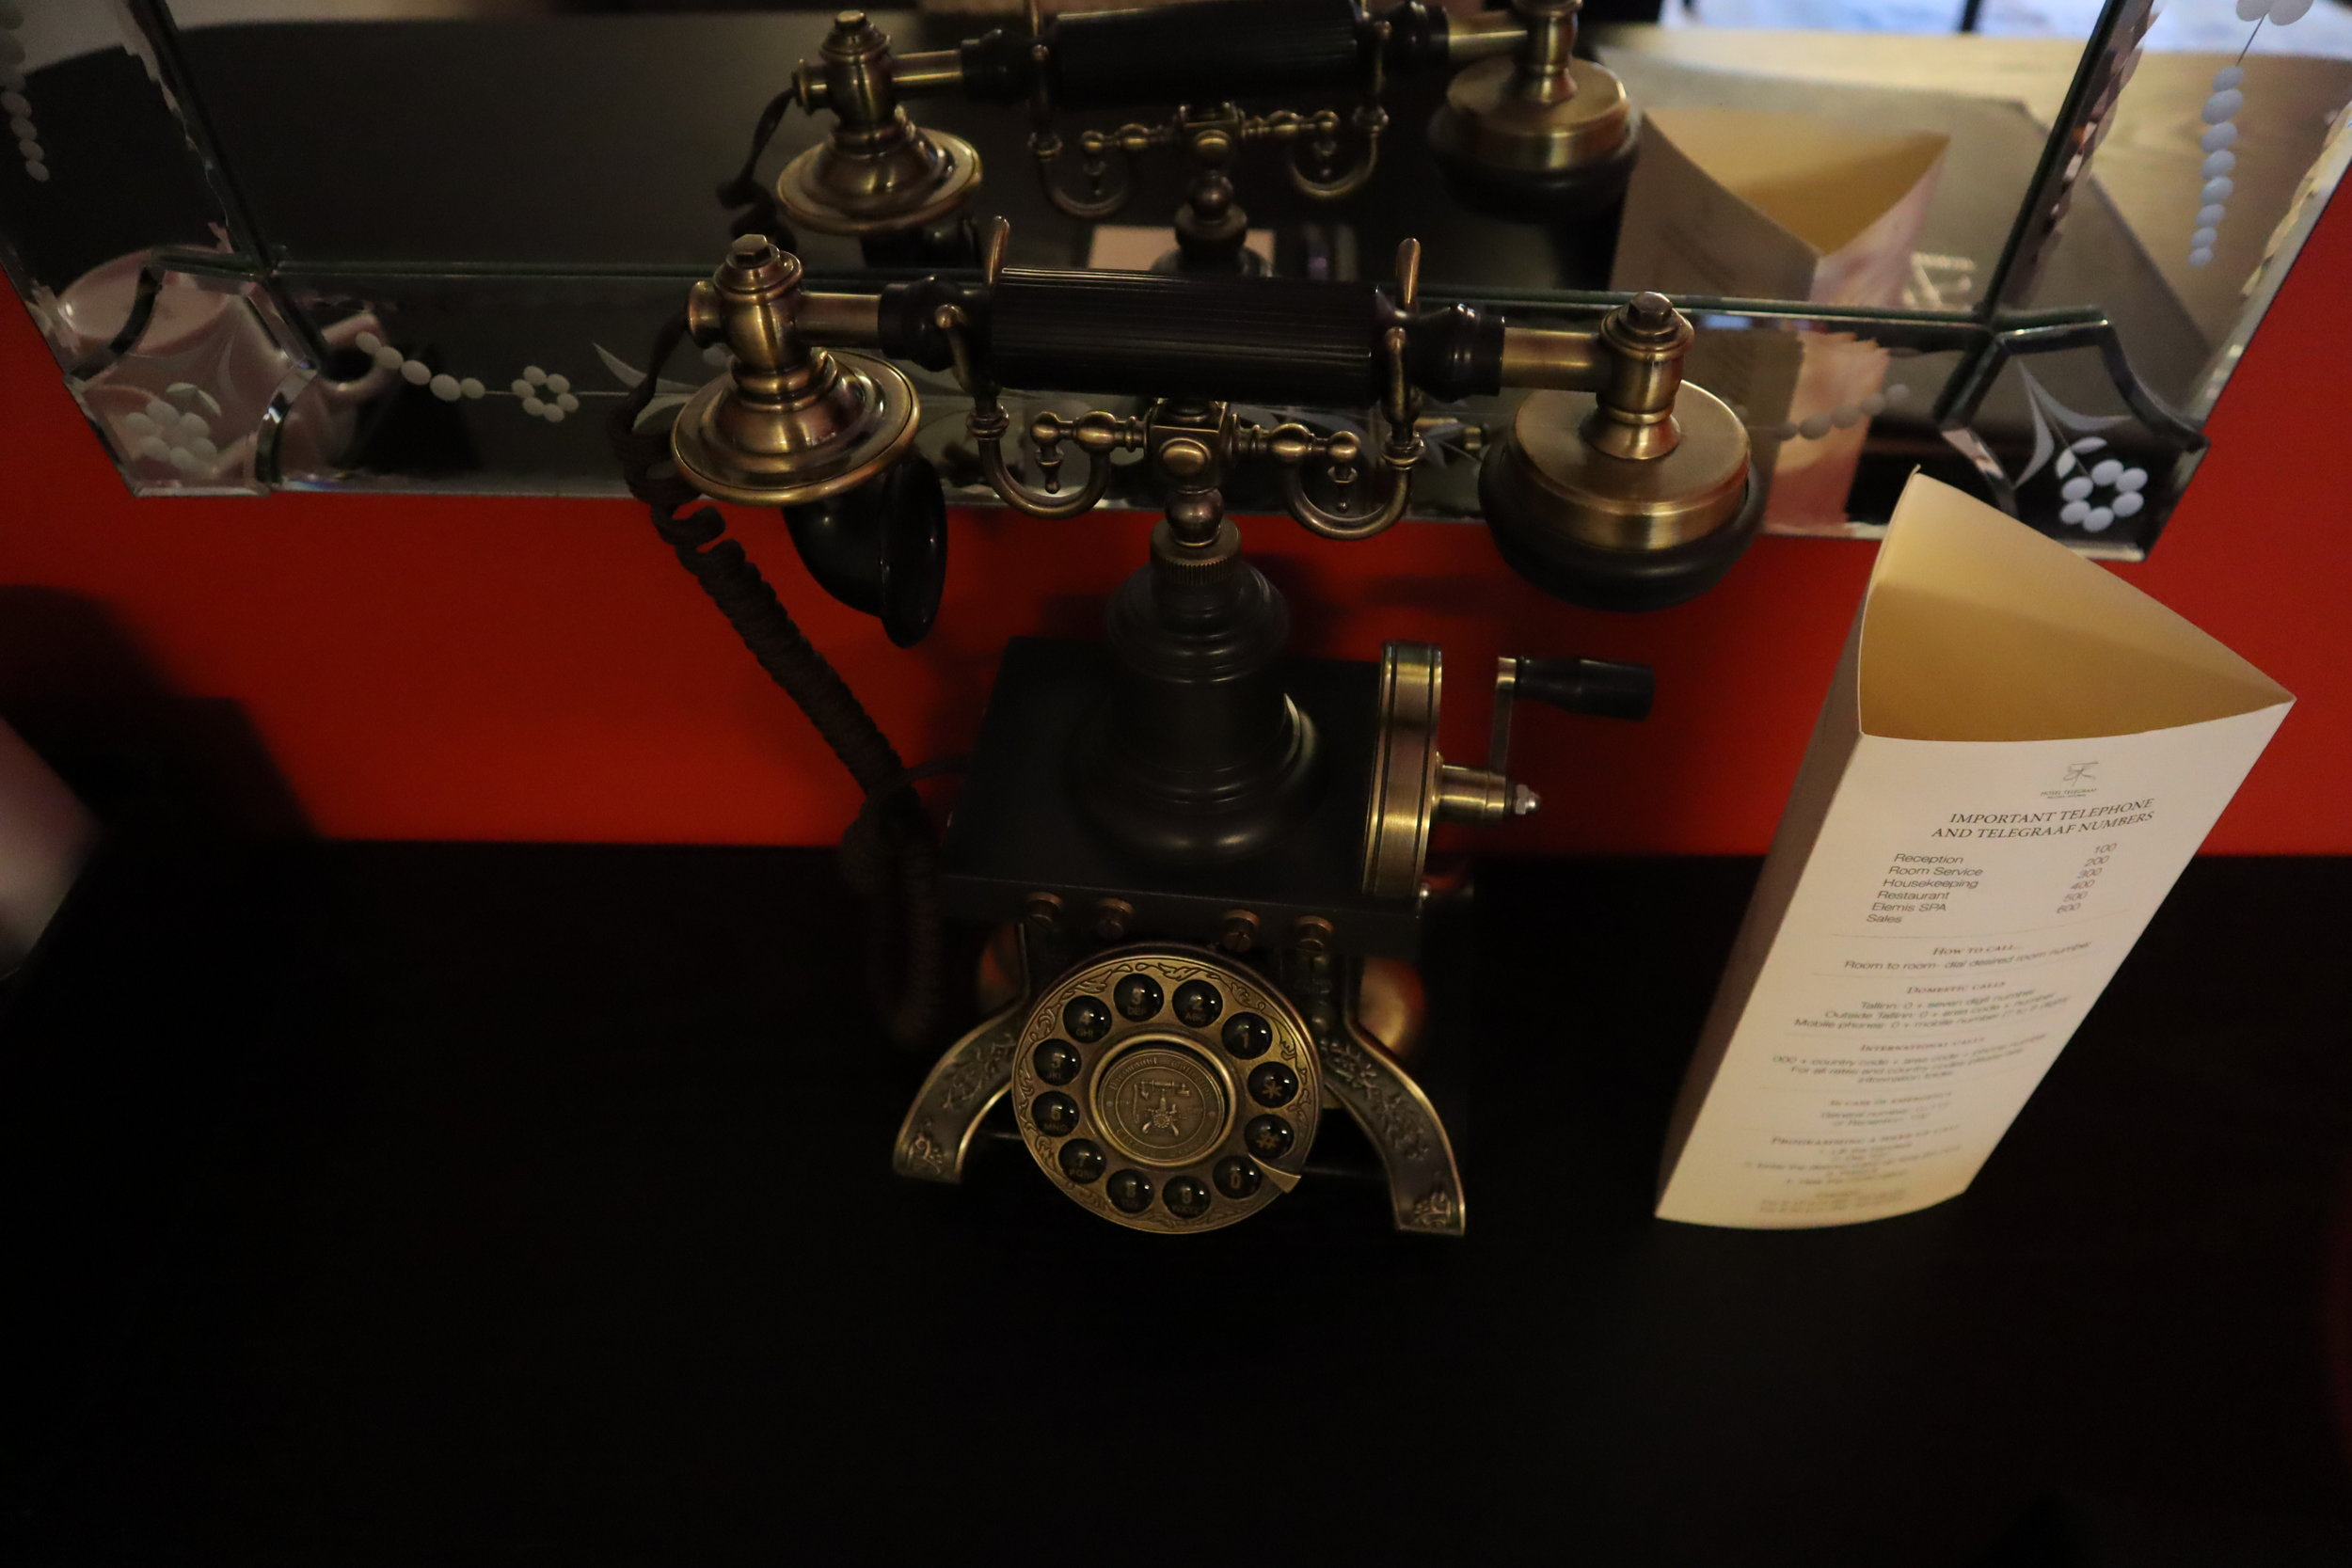 Hotel Telegraaf Tallinn – Old-school telephone